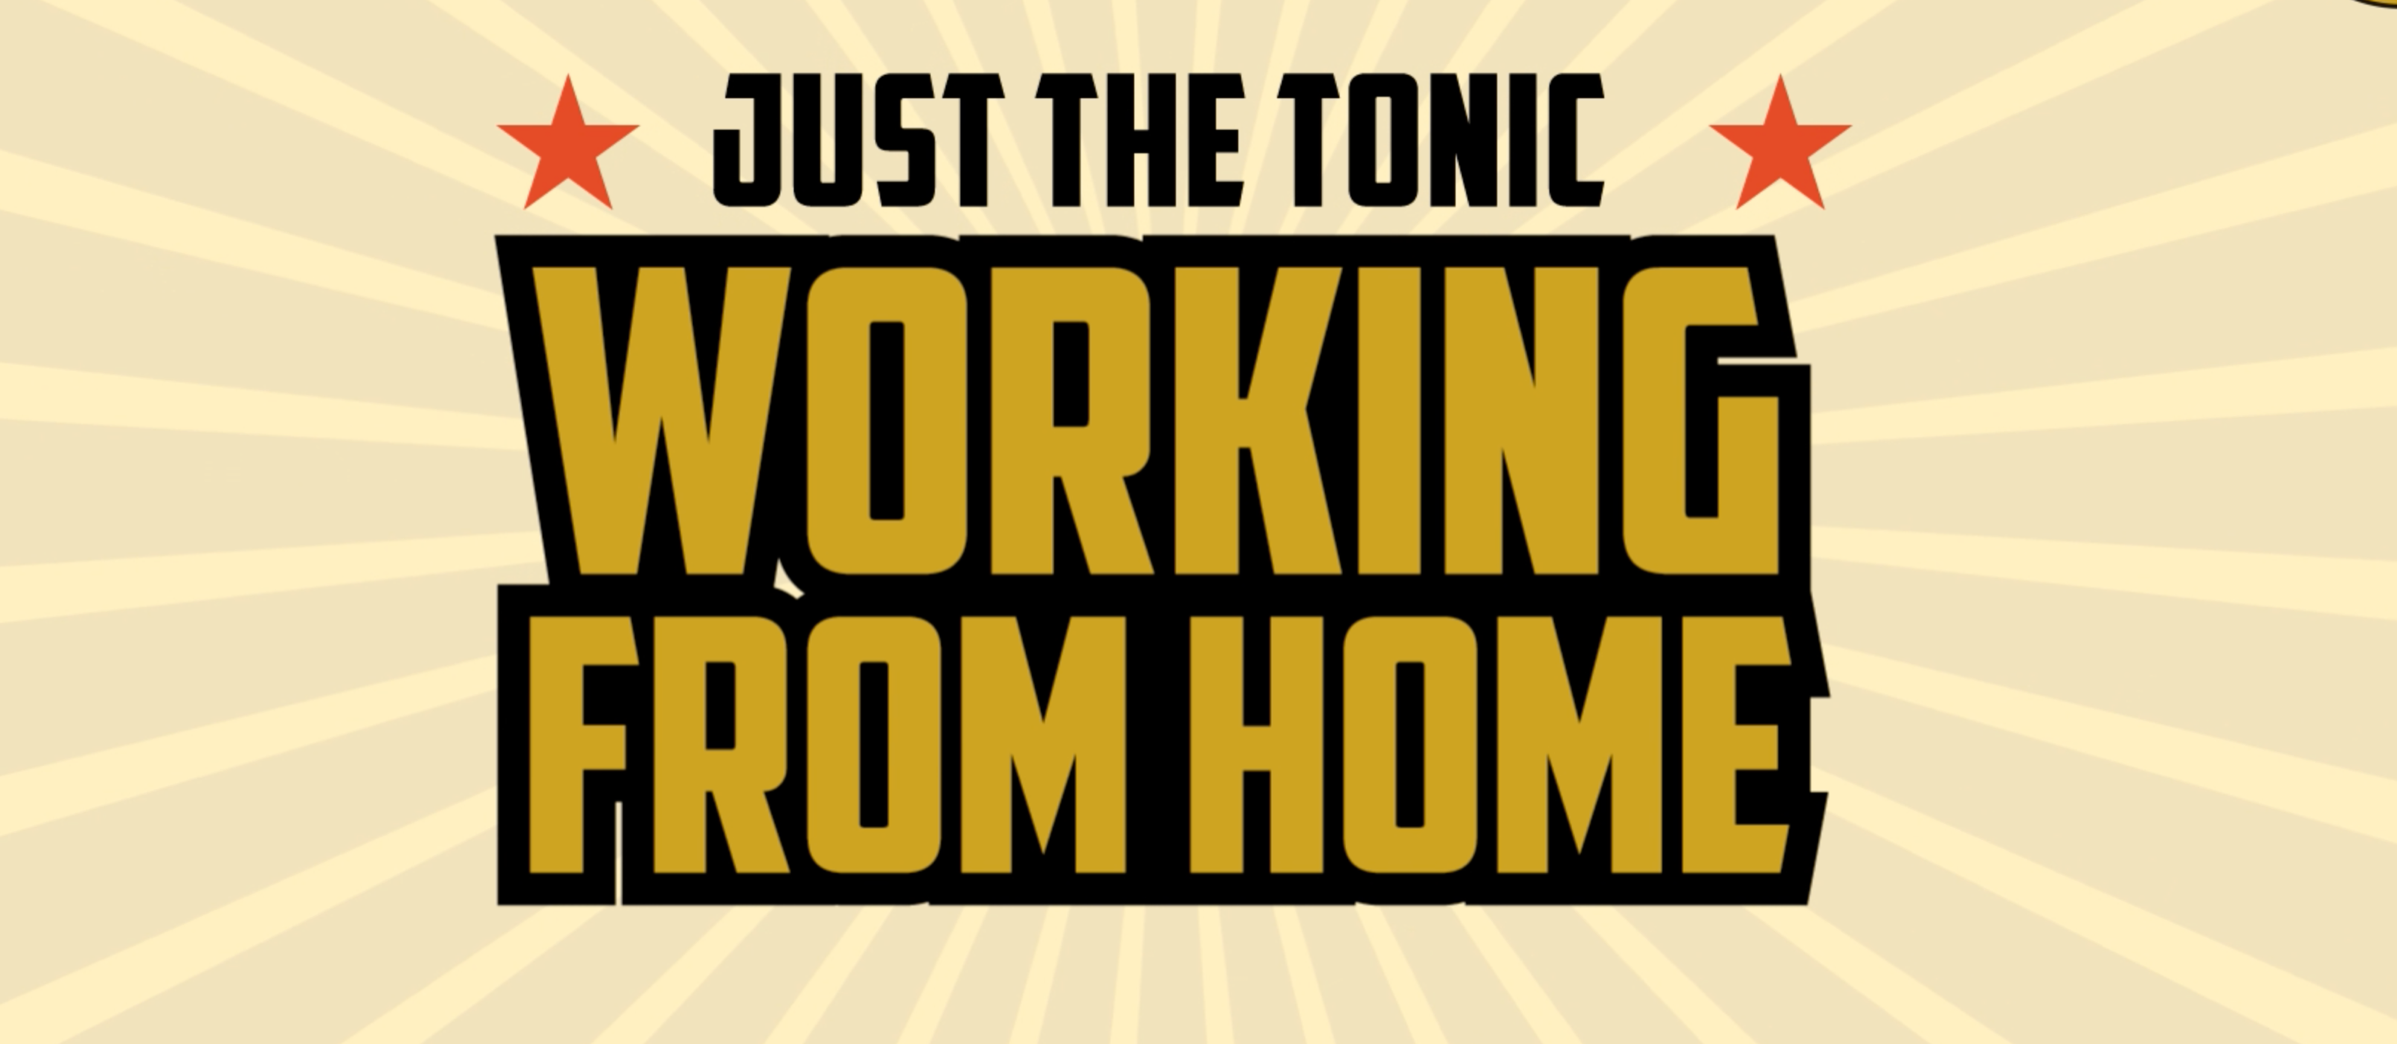 Just the Tonic - Working From Home: Let's Get Ready To Rumble...